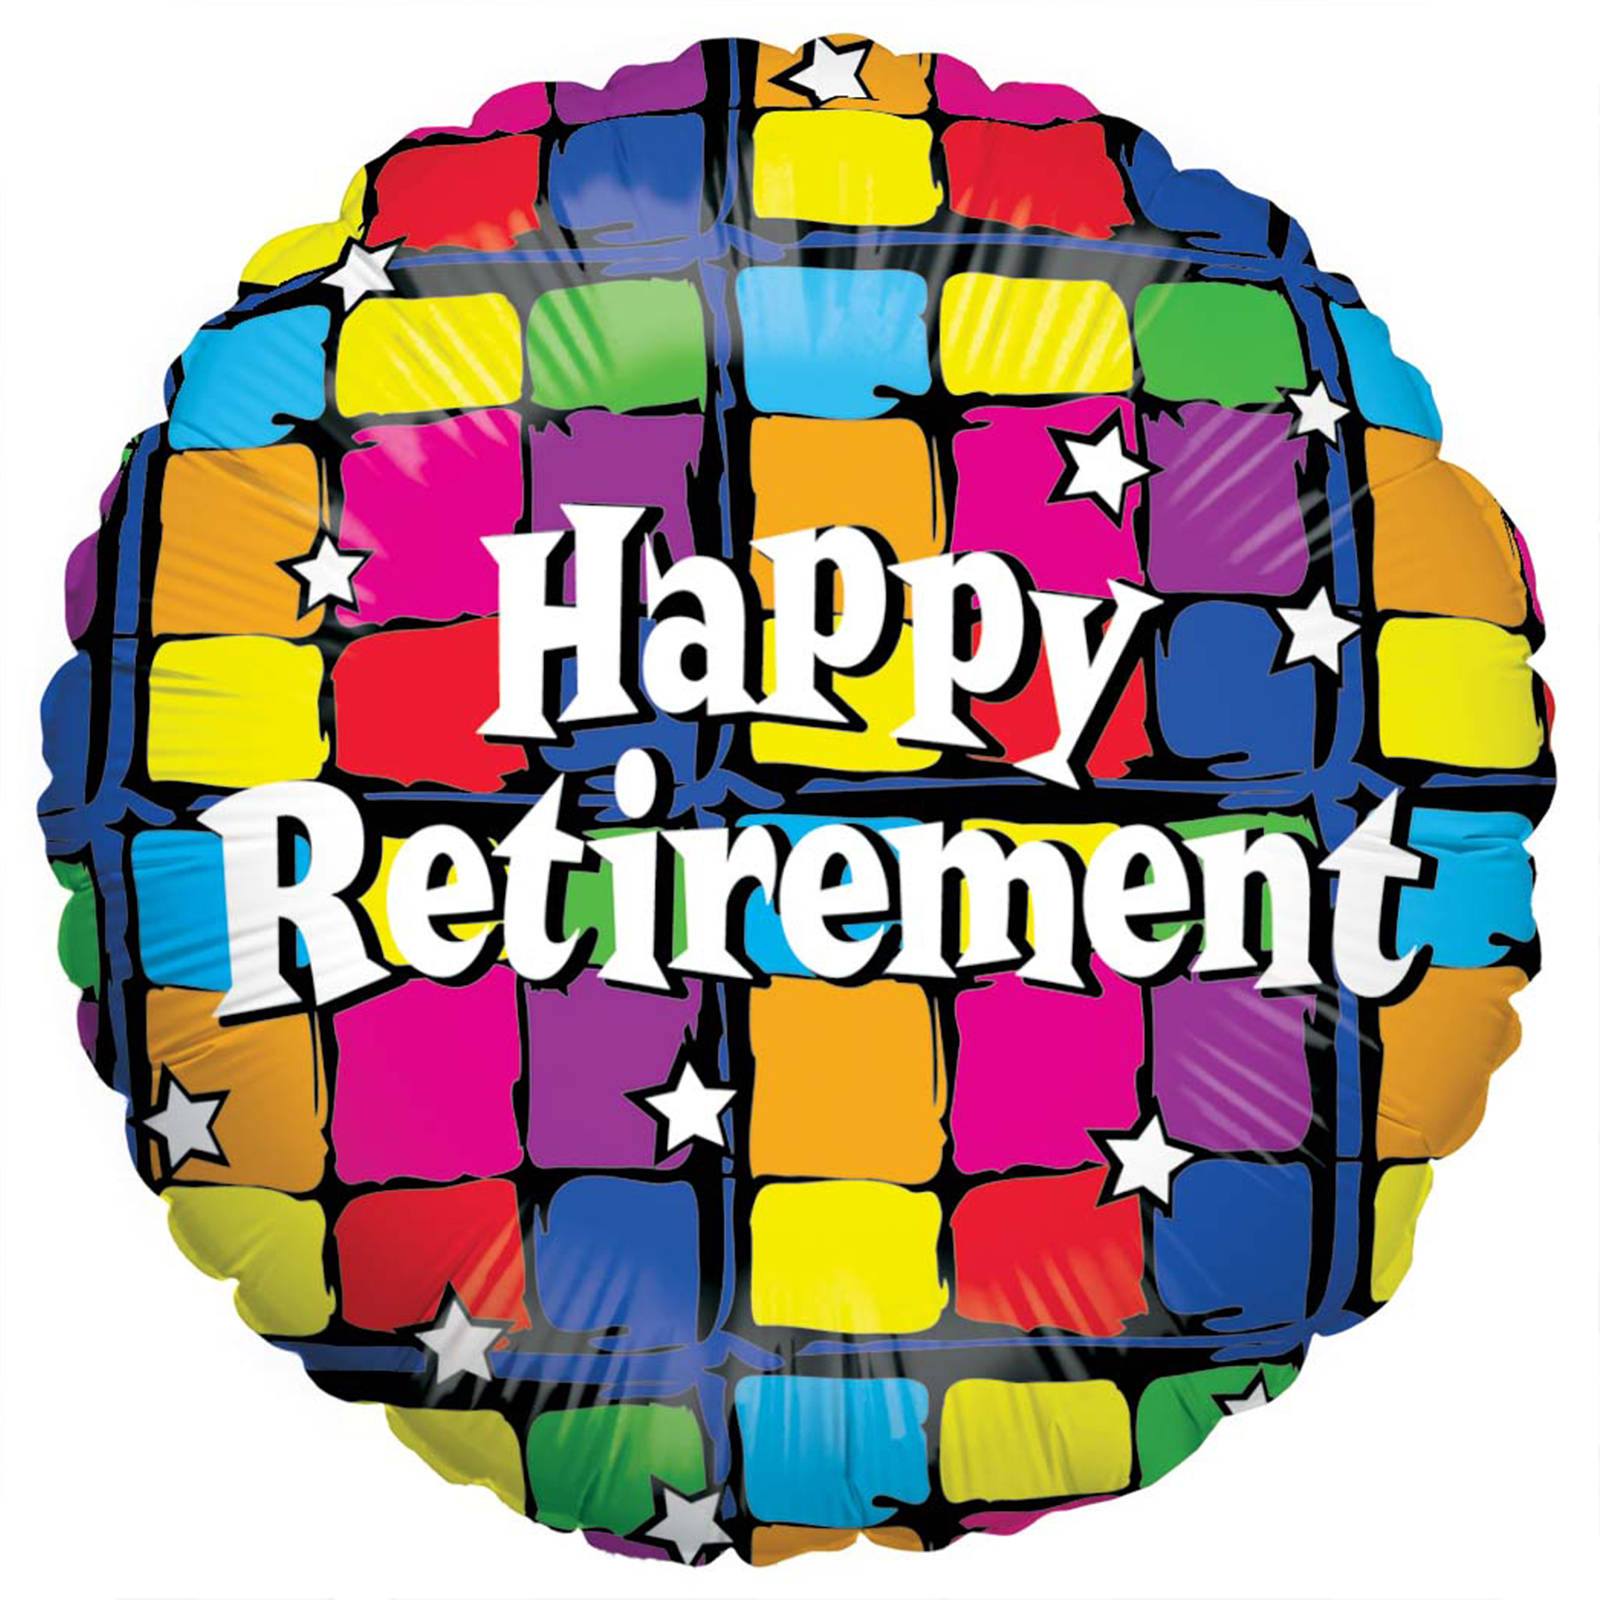 1600x1600 Retirement Download Free Tire Clipart Clipartmonk Free Clip Art